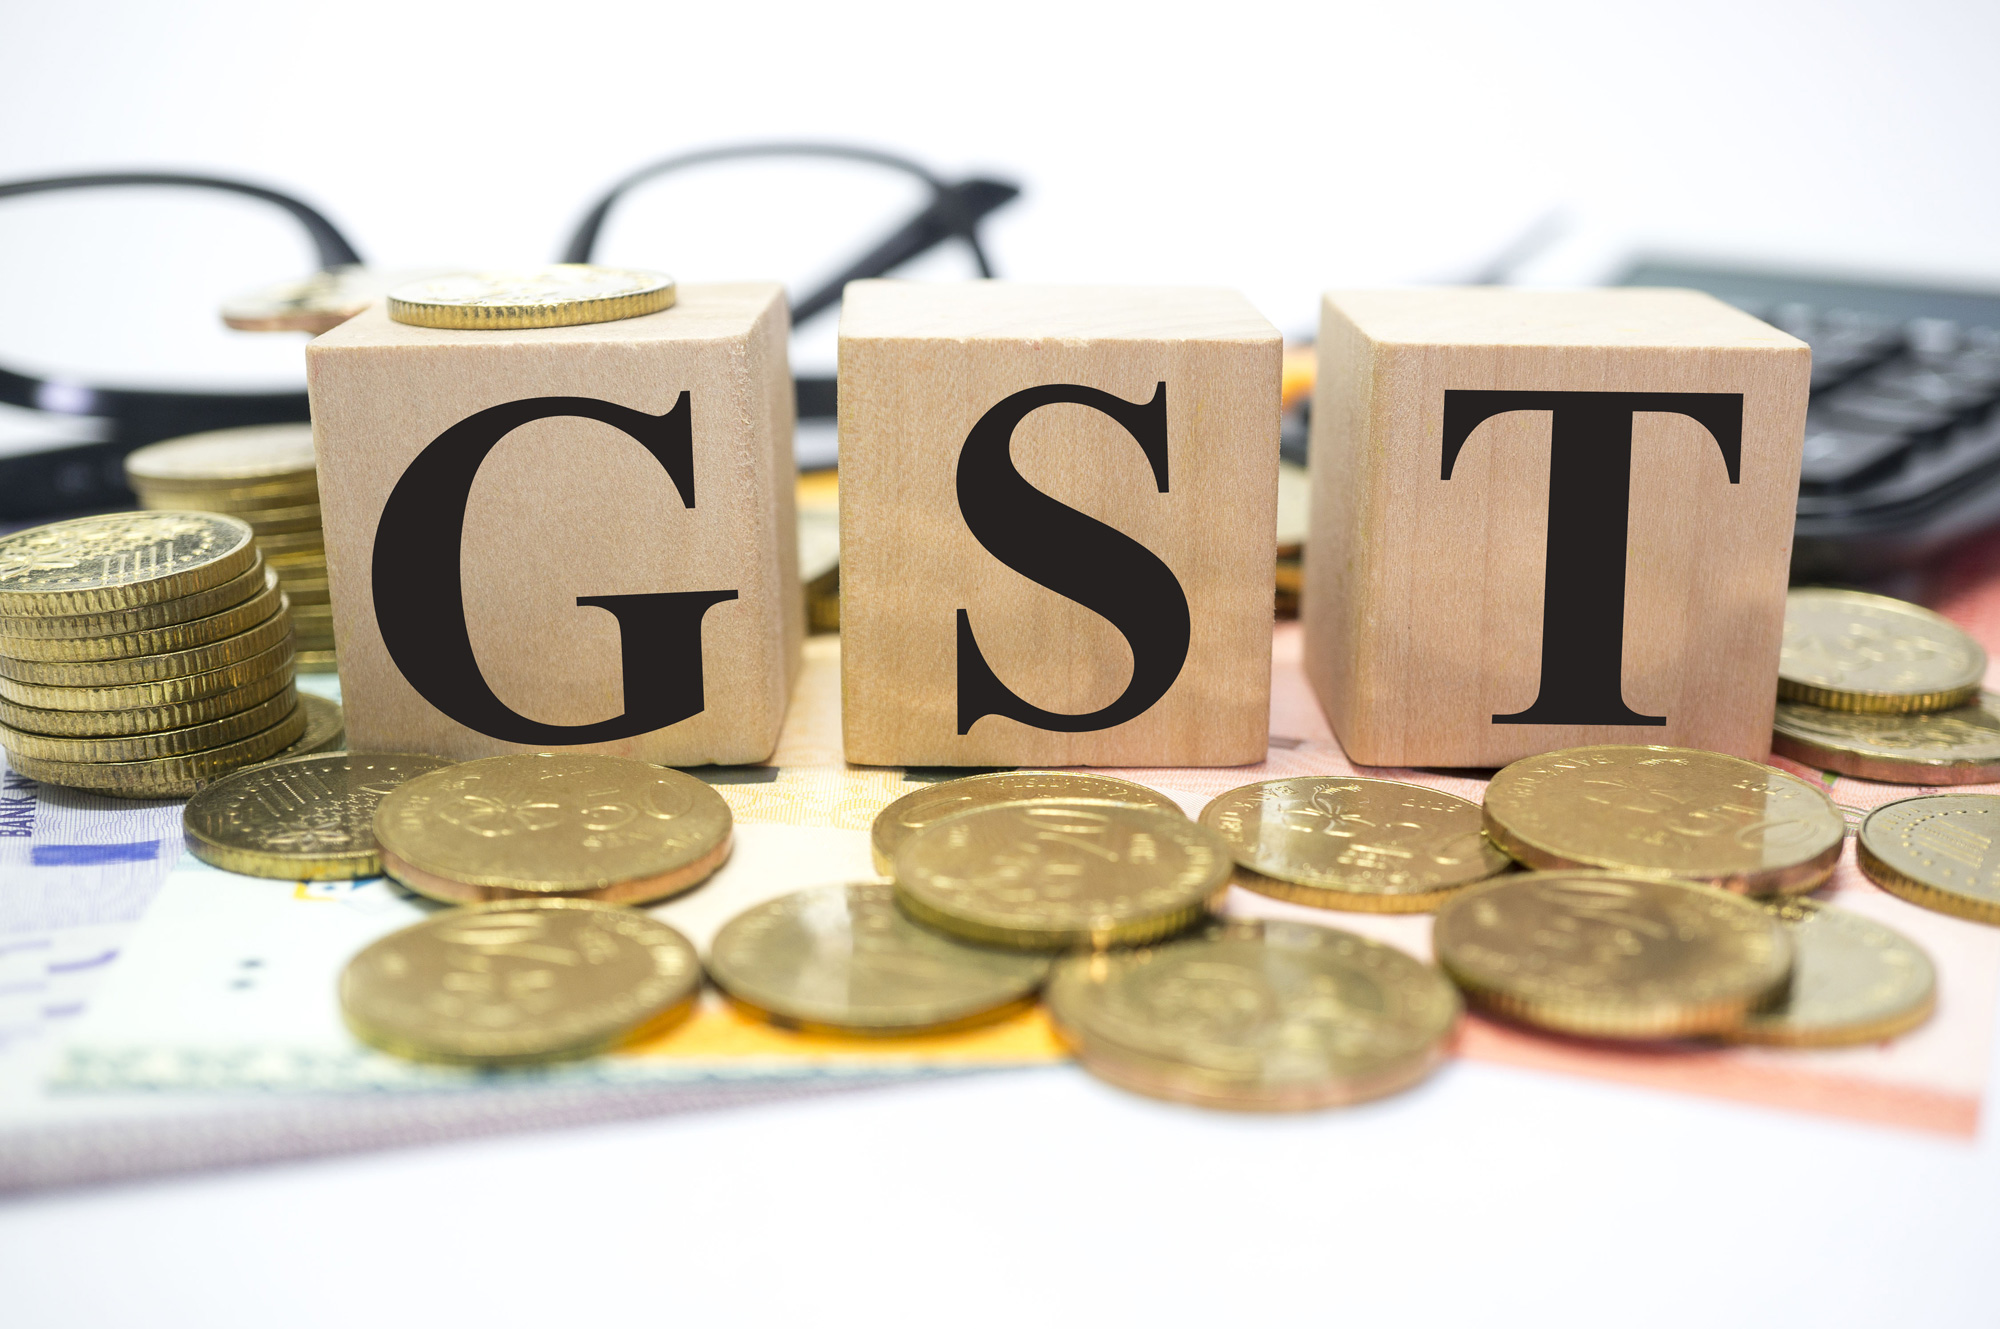 The govt has lowered the GST collection target for the current fiscal to Rs 11.47 lakh crore in the revised estimates from Rs 13.71 lakh crore budgeted initially. For 2019-20, the target is Rs 13.71 lakh crore. The number of sales returns or GSTR-3B filed for the month of January up to February.